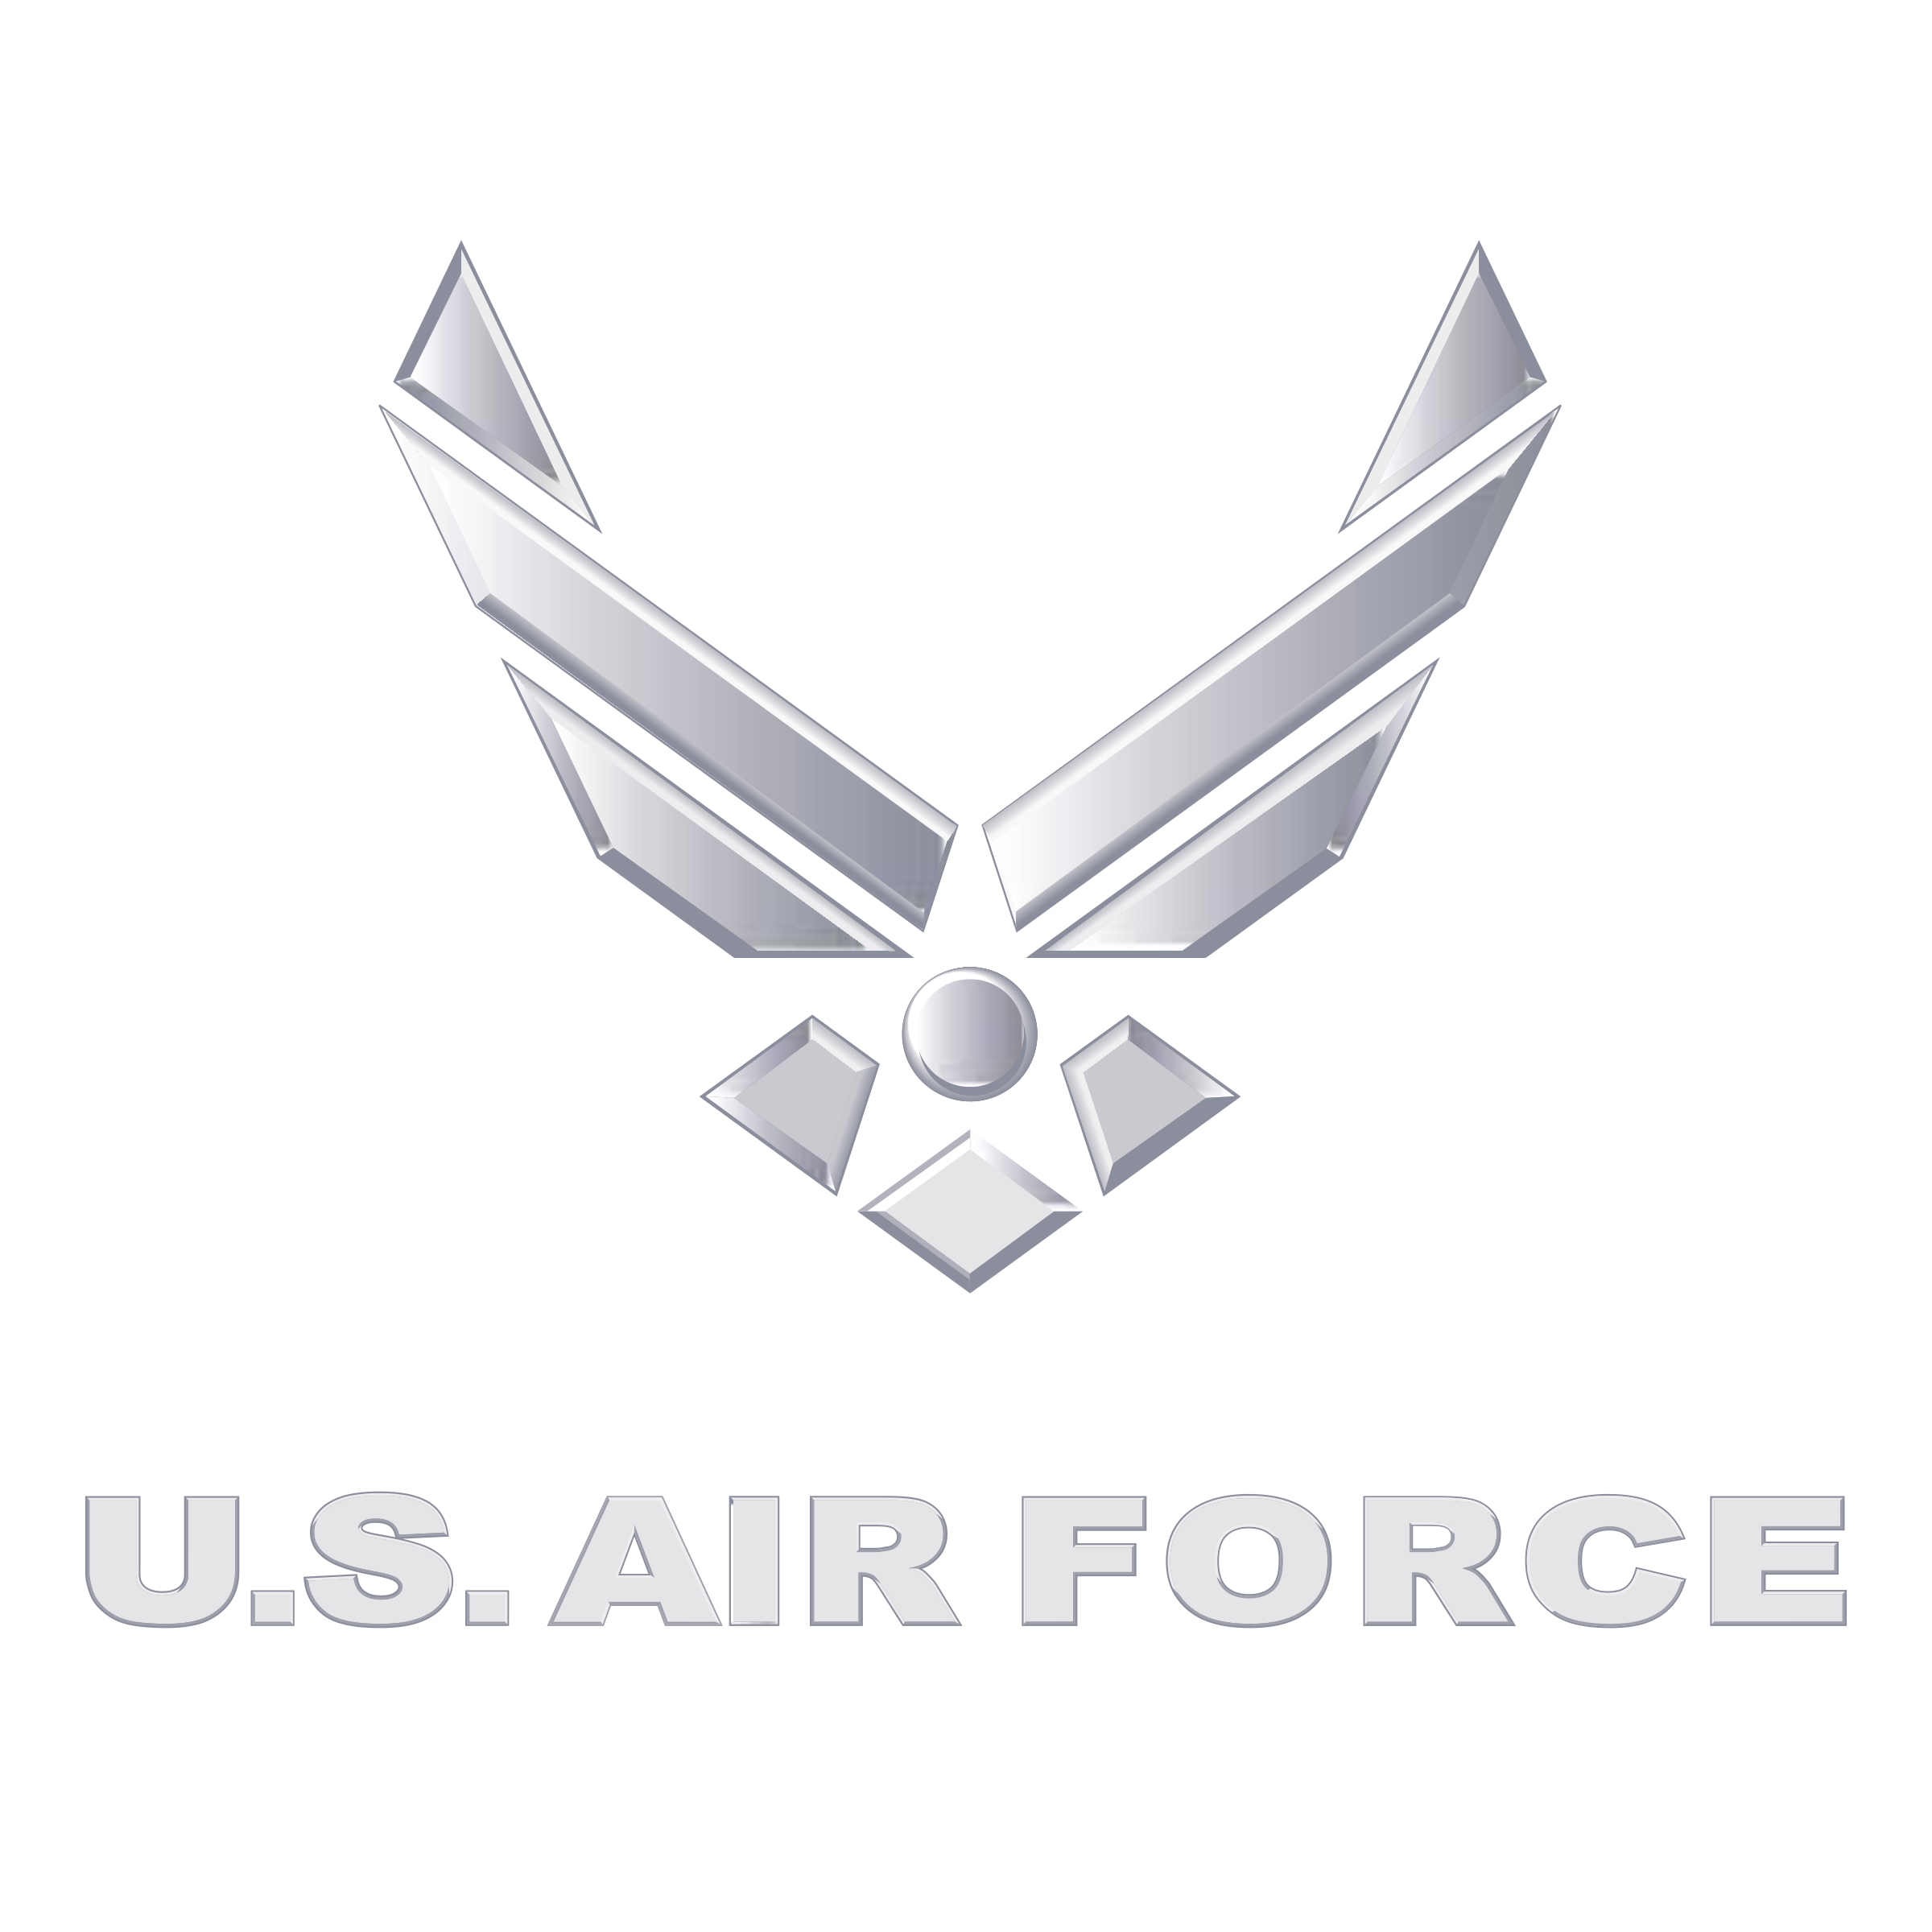 png library library Us logo png transparent. Vector emblem air force